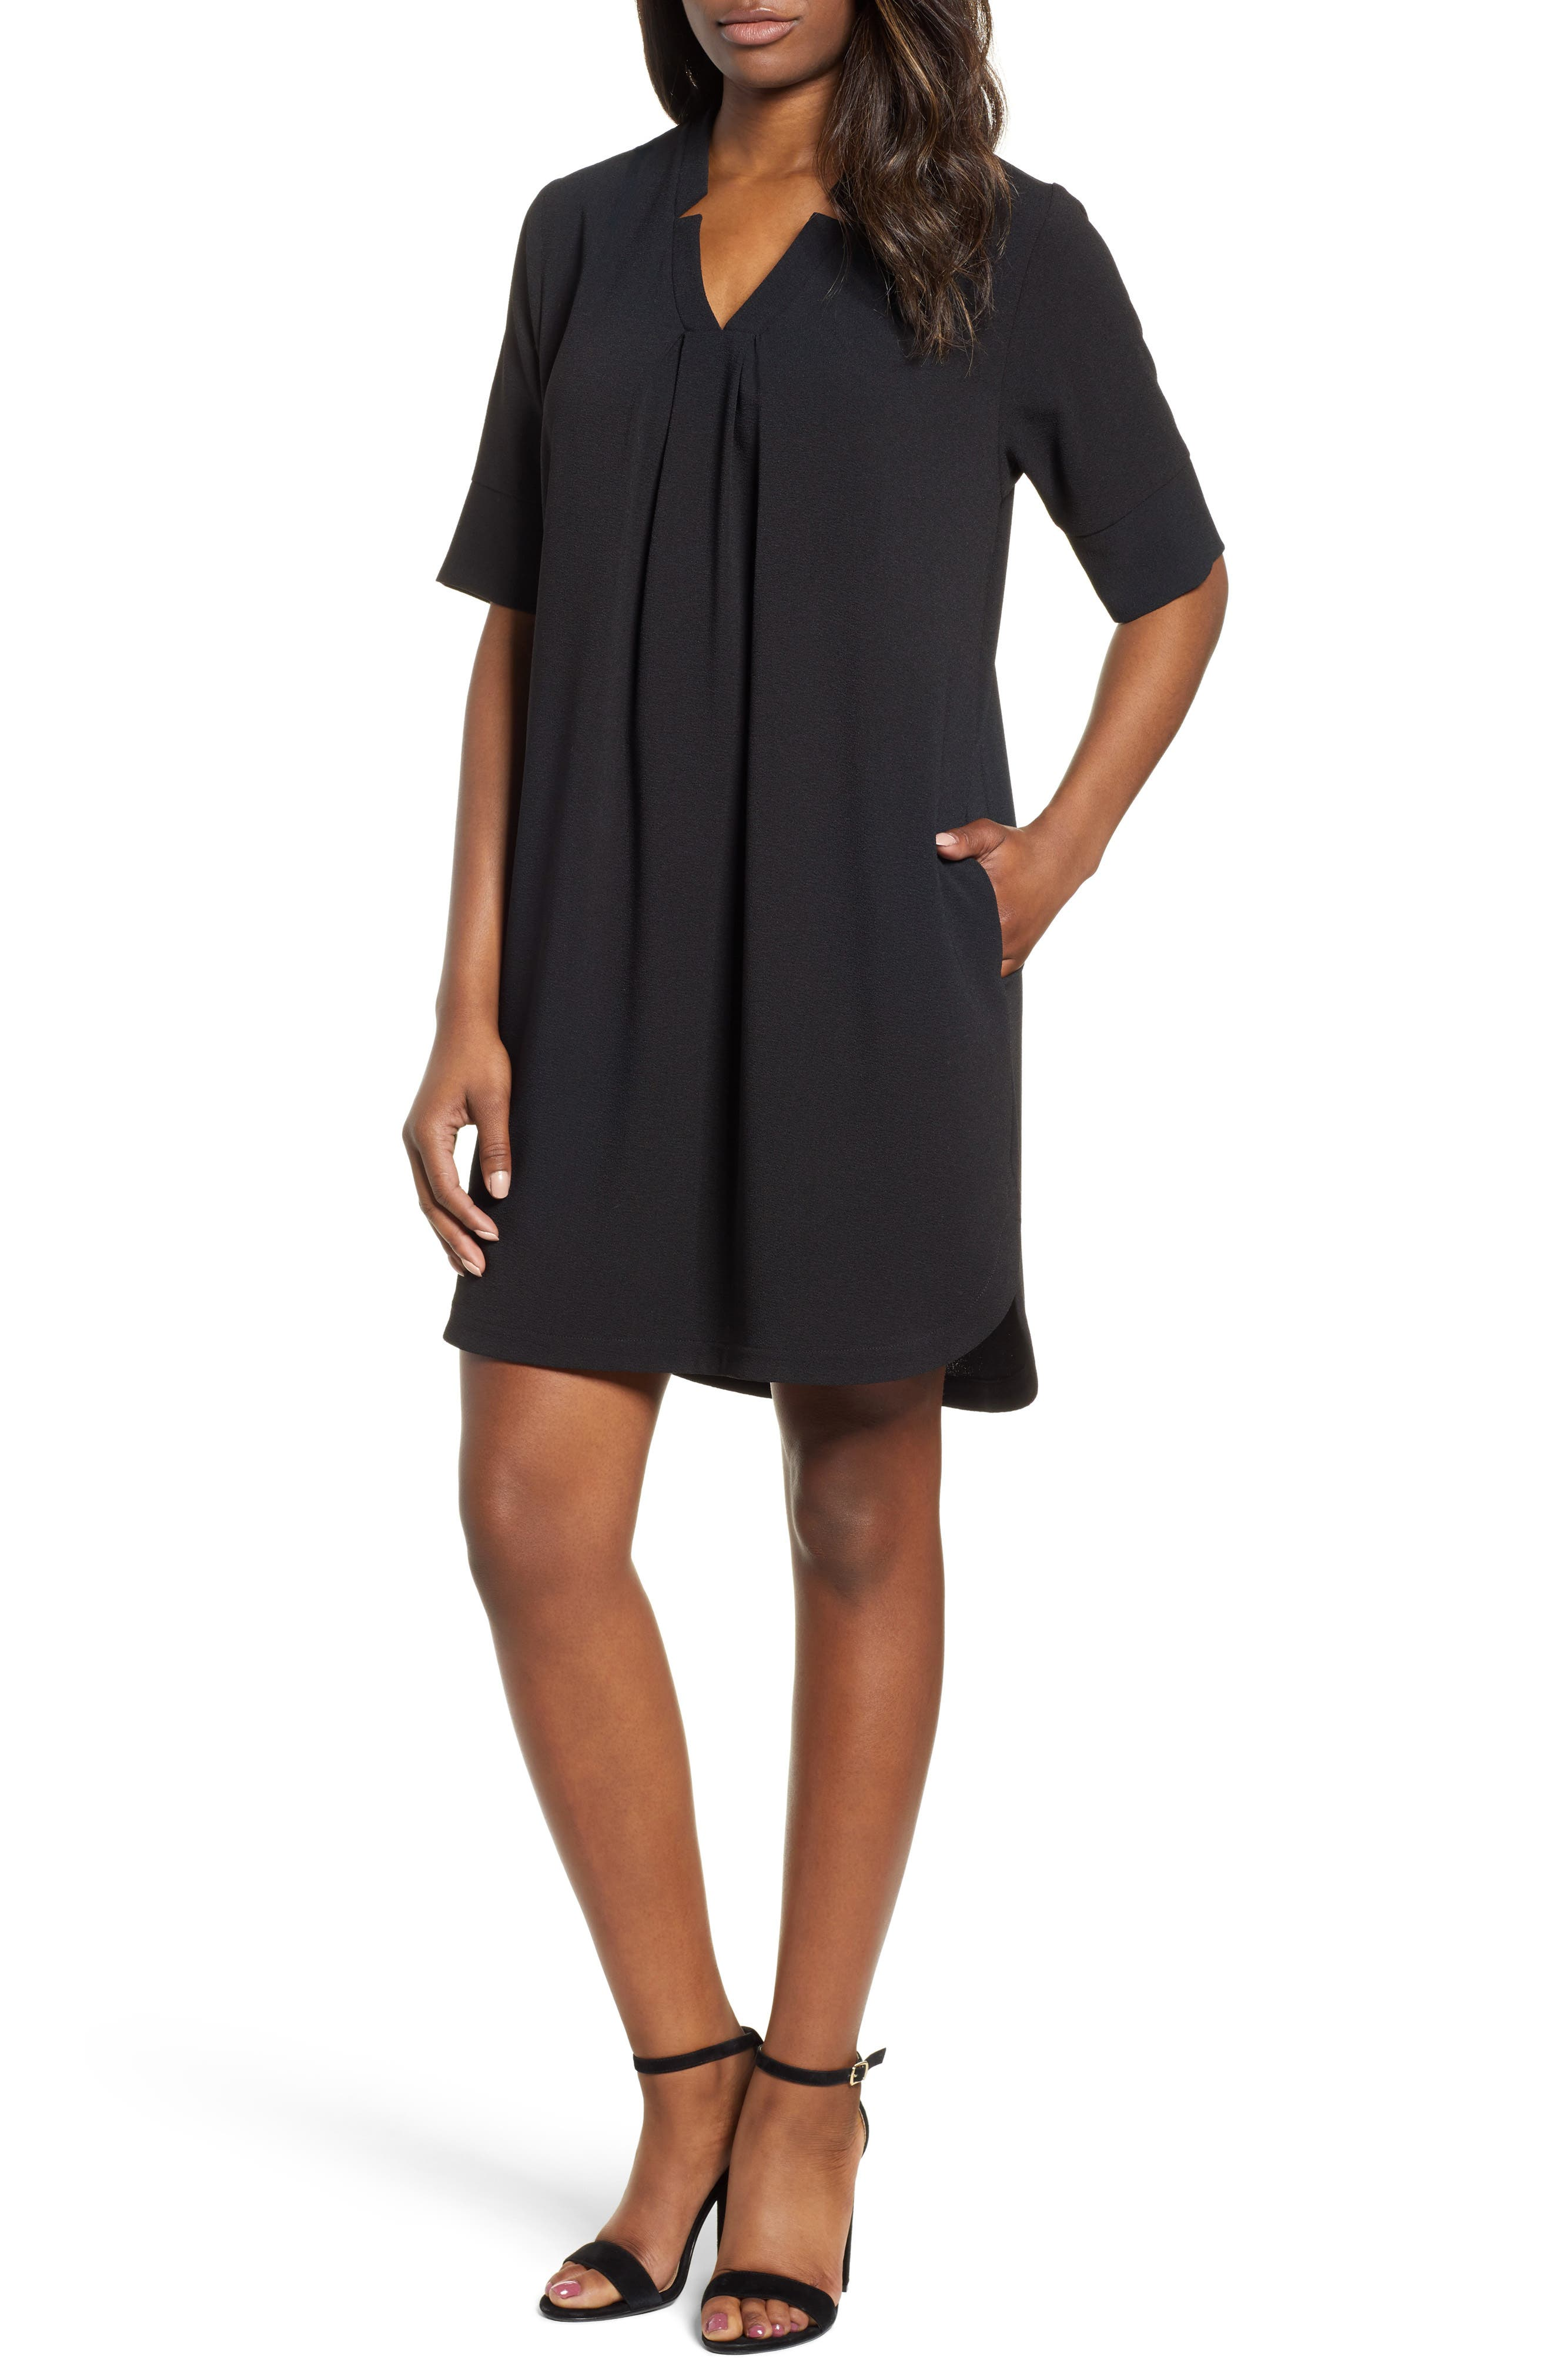 Freely flowing and leg-showing, this kicky little dress features a sweetly split neck and a shirttail hemline. Style Name: Bobeau Pleat Front Curved Hem Shirtdress (Regular & Petite). Style Number: 5631536 1. Available in stores.